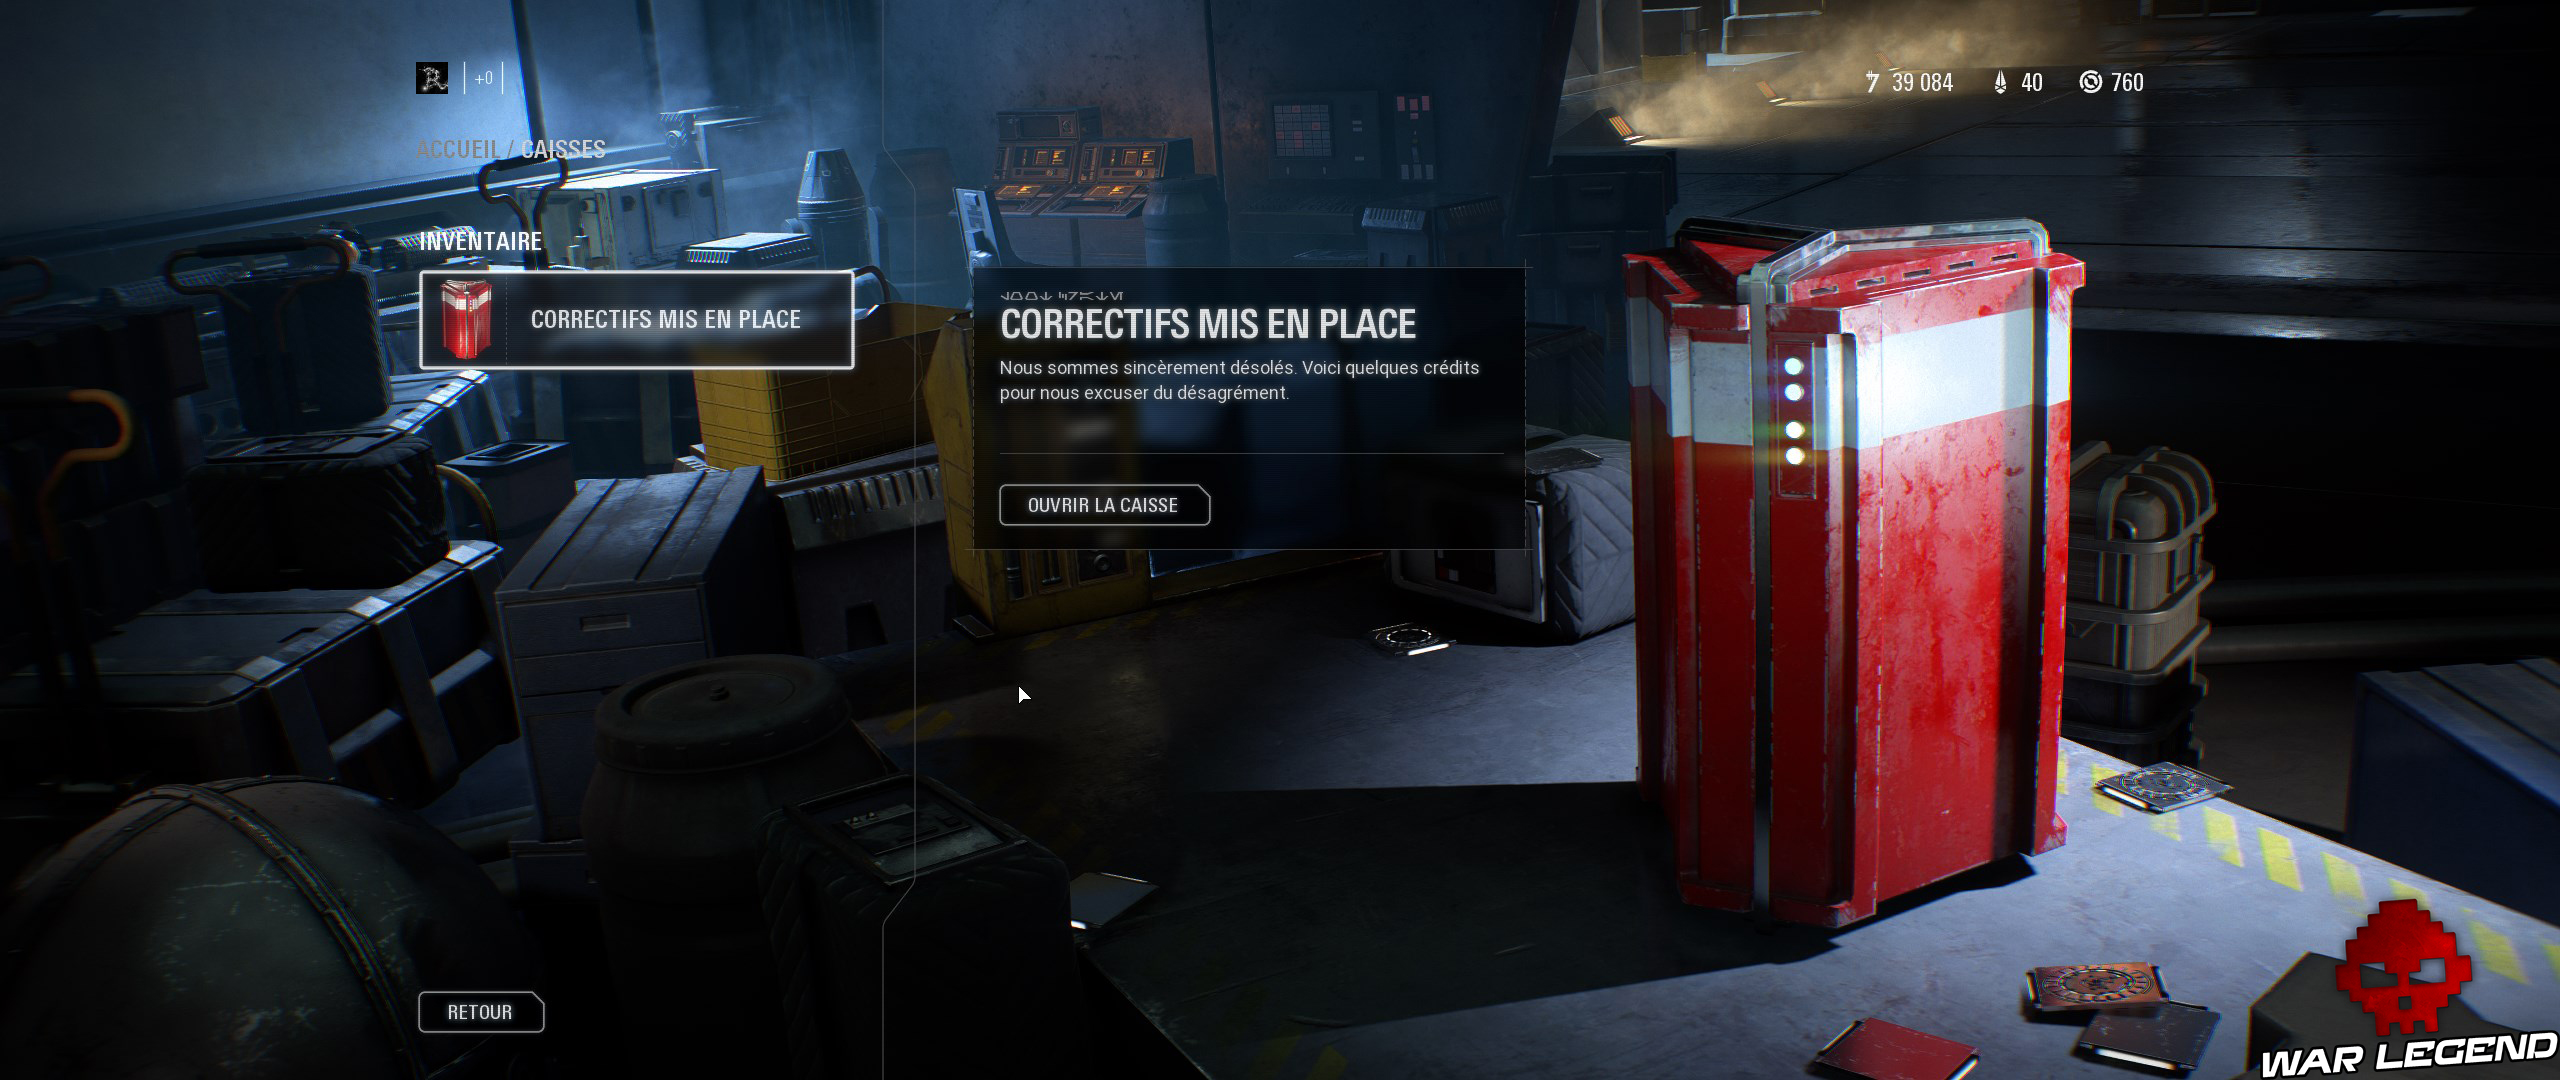 ReTest Star Wars Battlefront II loot box correctif excuses